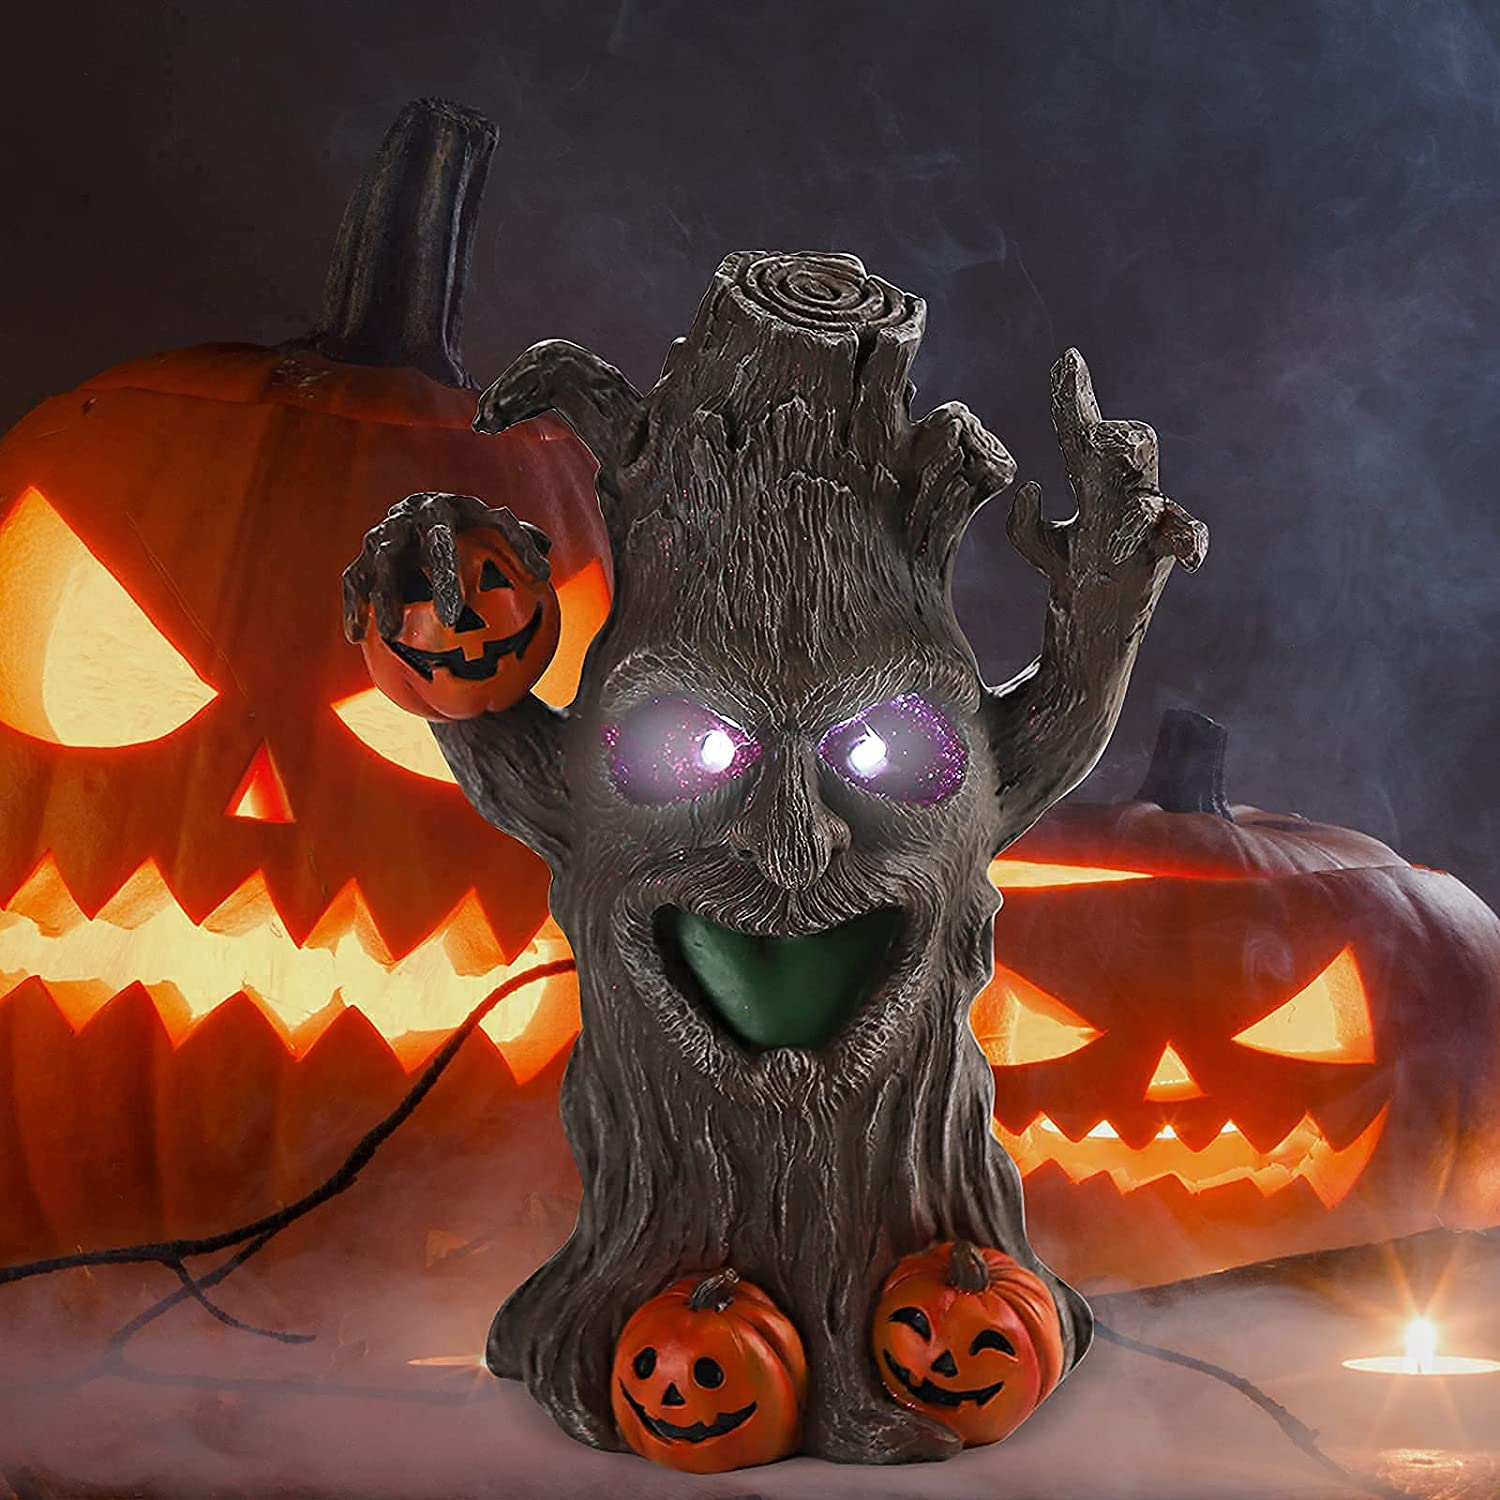 Halloween Ghost Tree Decoration,Christmas Halloween Ornament with LED Light,Wooden Pumpkin and Ghosts Tree Decor,Realistic Ornaments for Table,Office,Home and Party Supplies